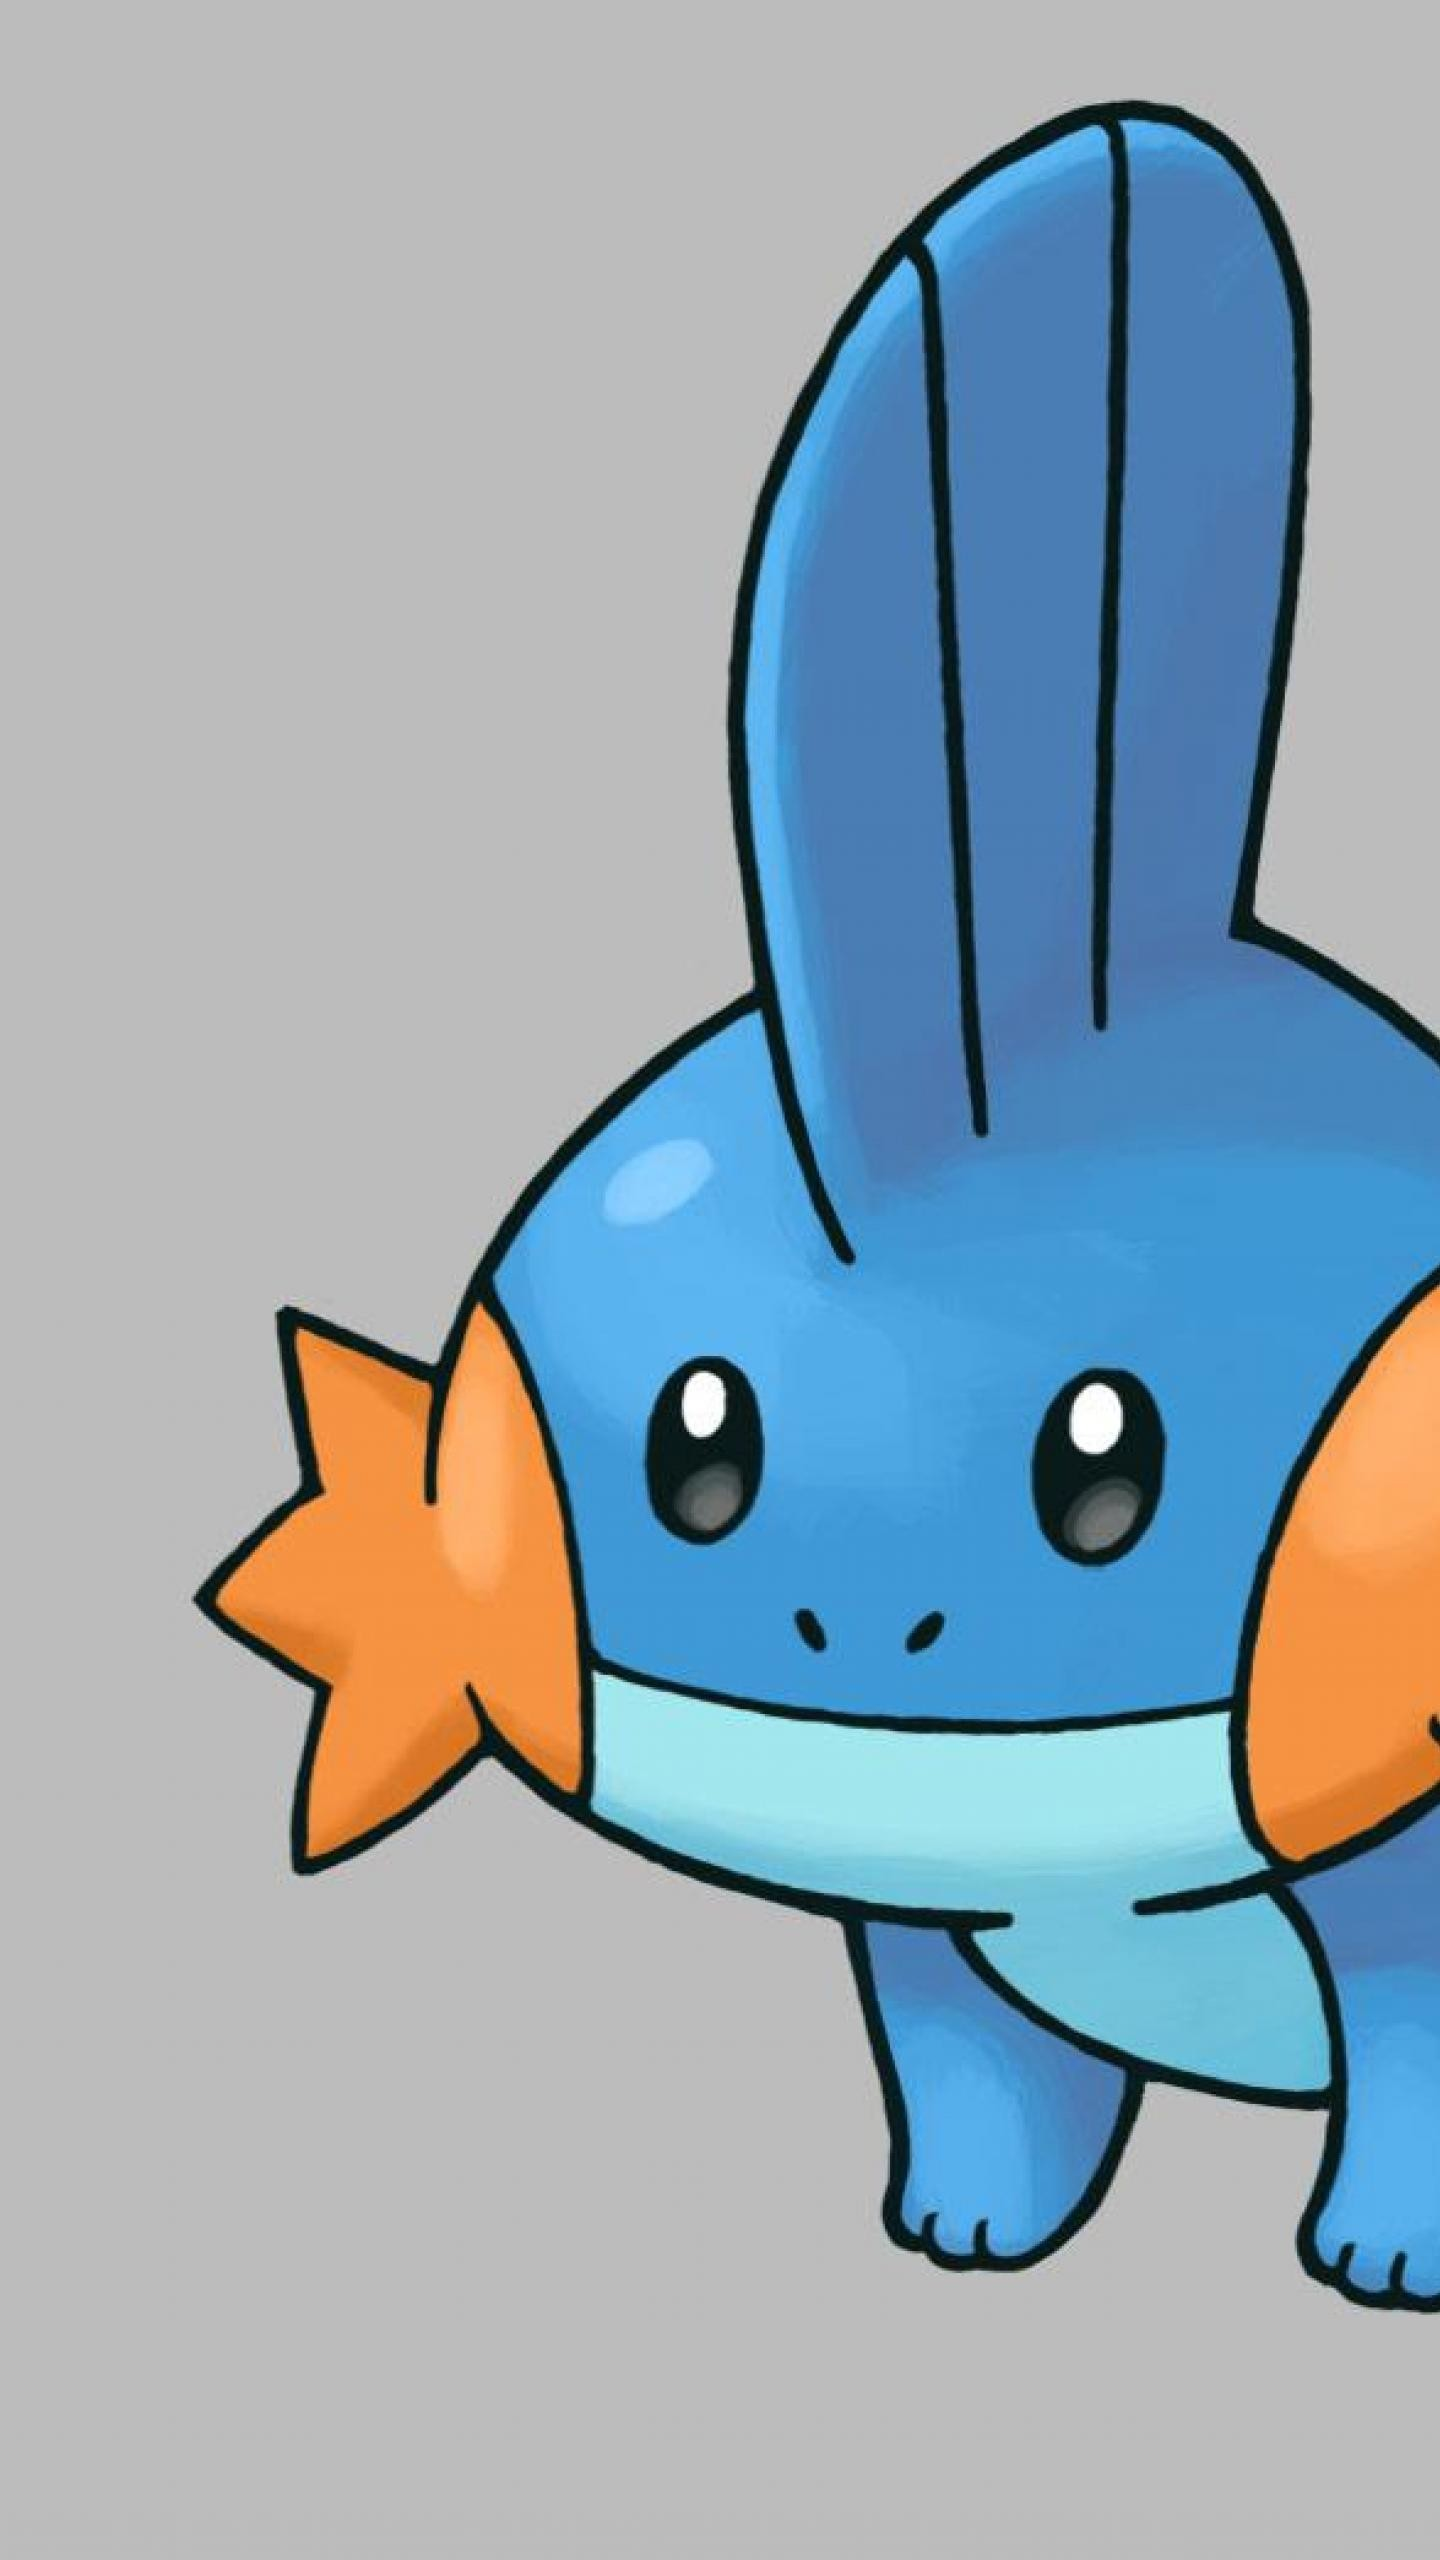 Mudkip Wallpapers 60 images 1440x2560